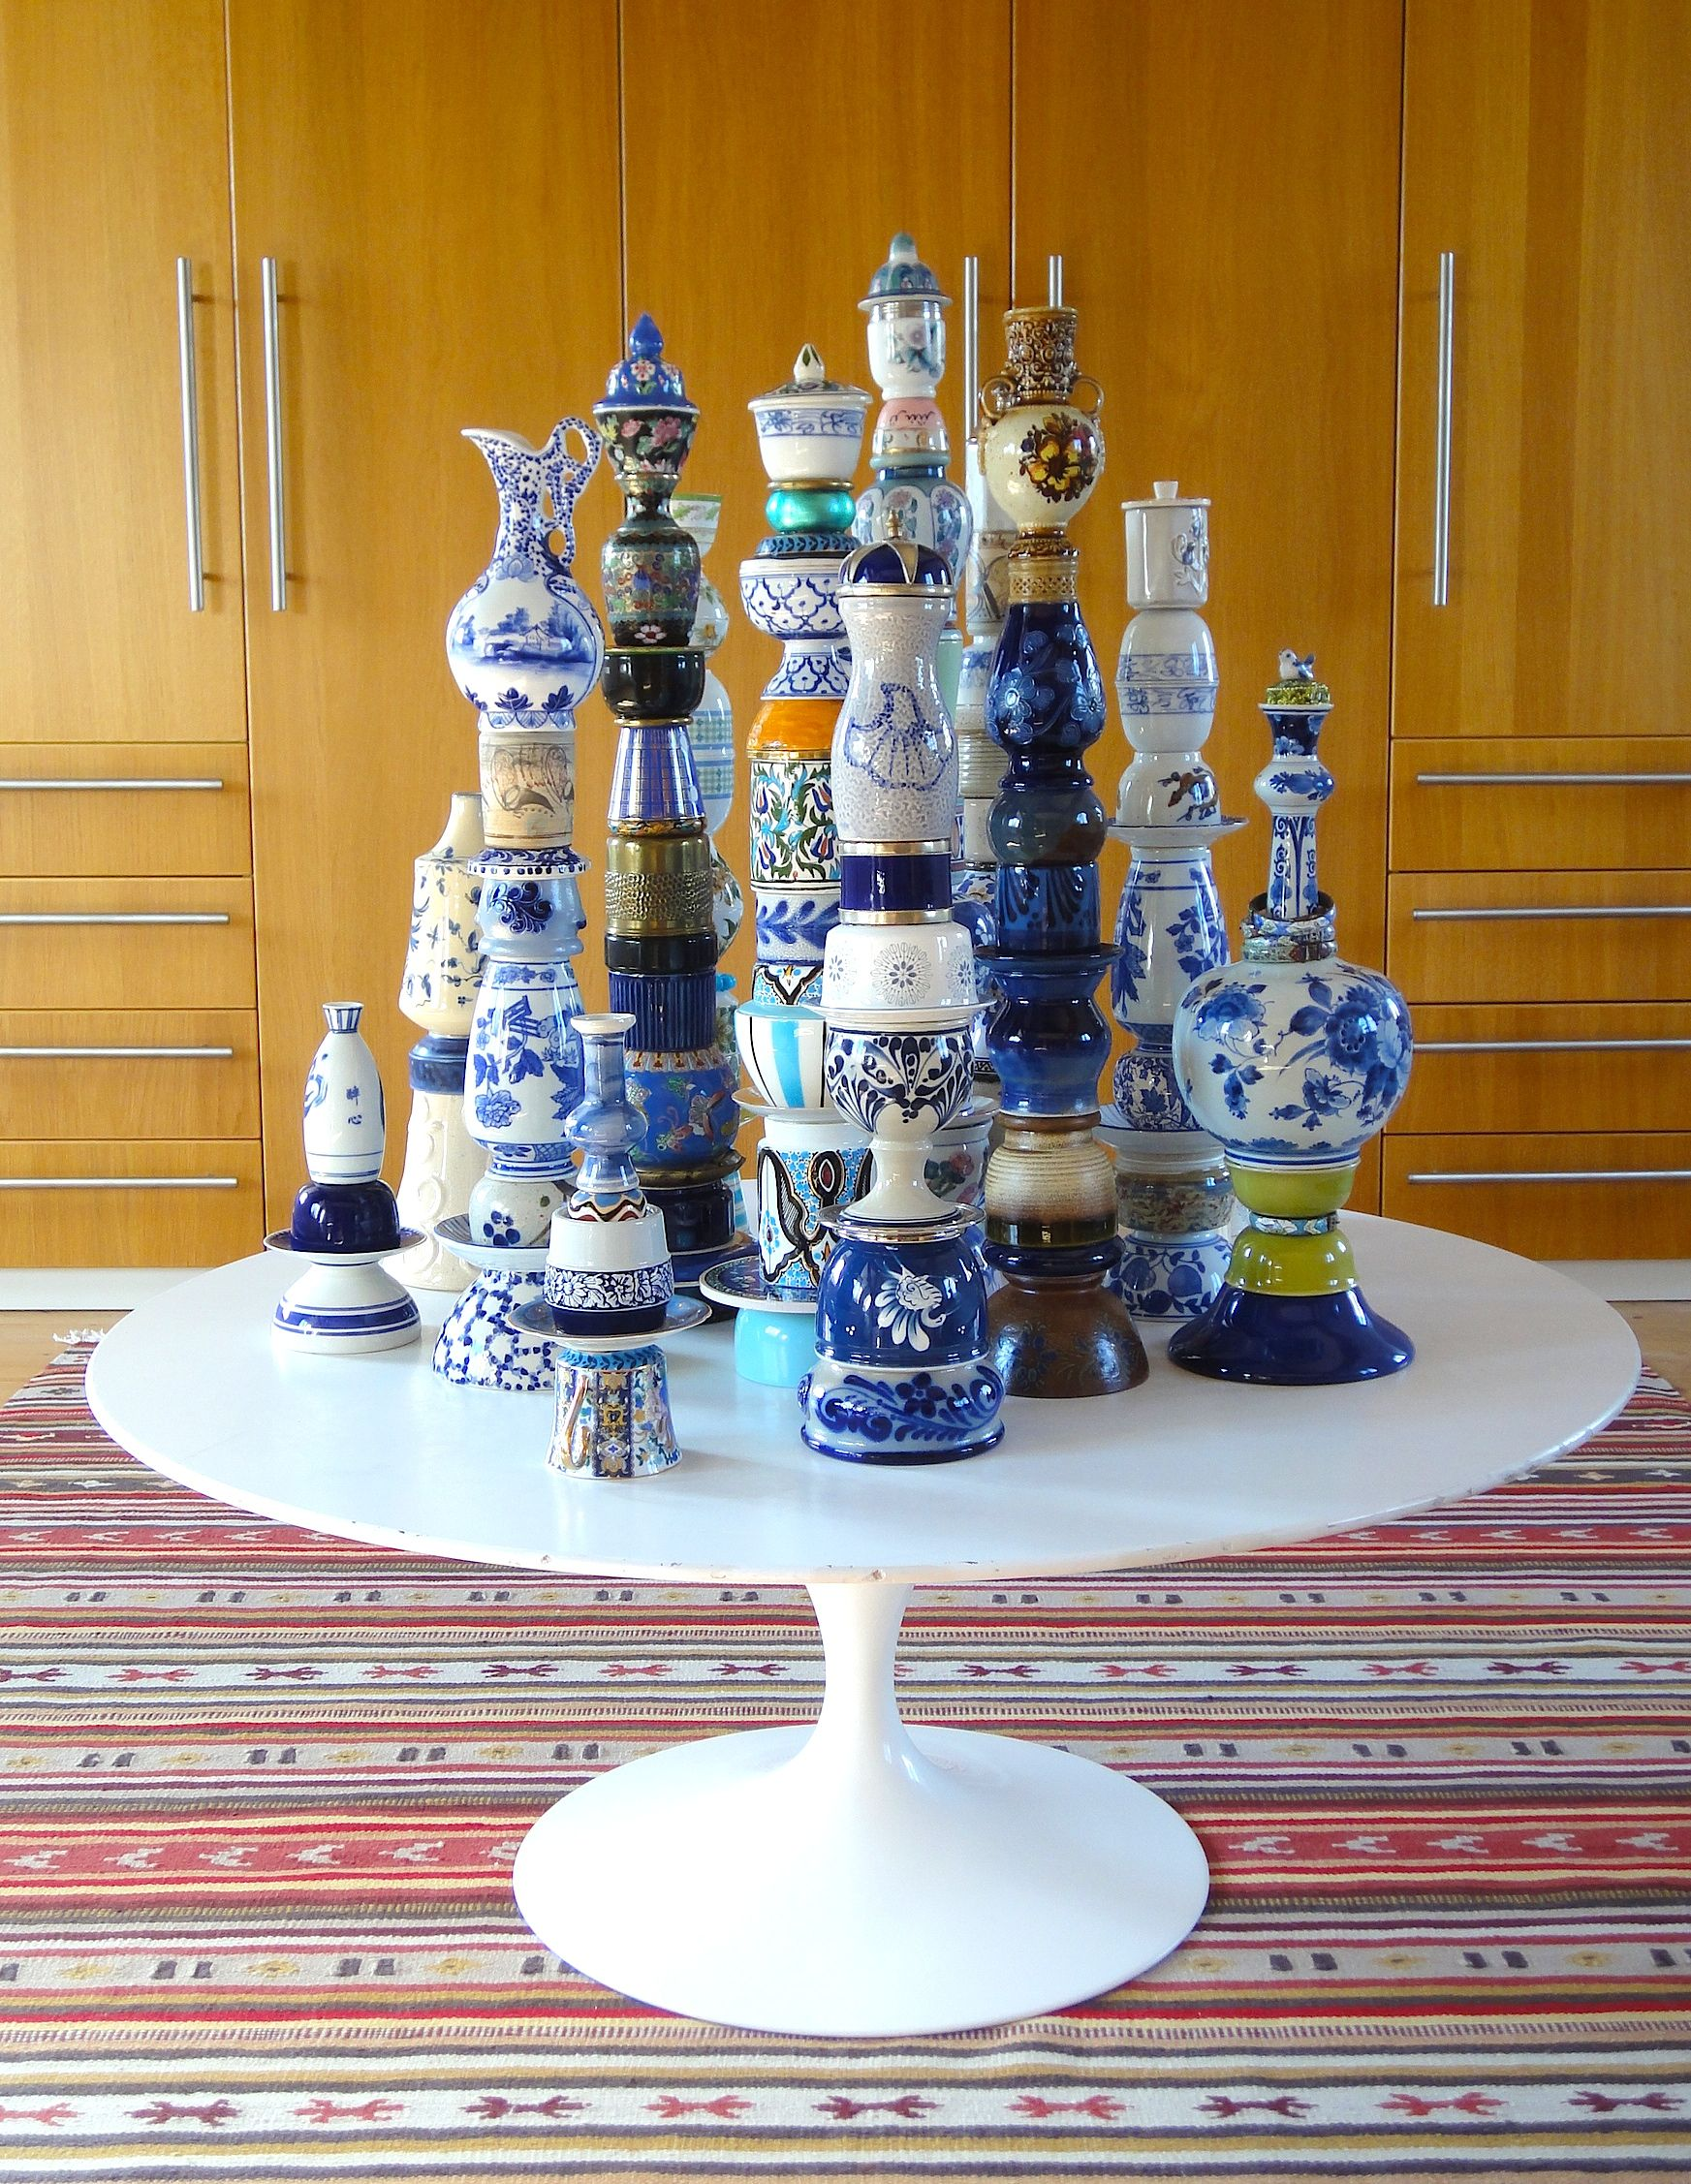 Quot Candelabras Quot Jacqueline Rommerts Spring Thing Looking